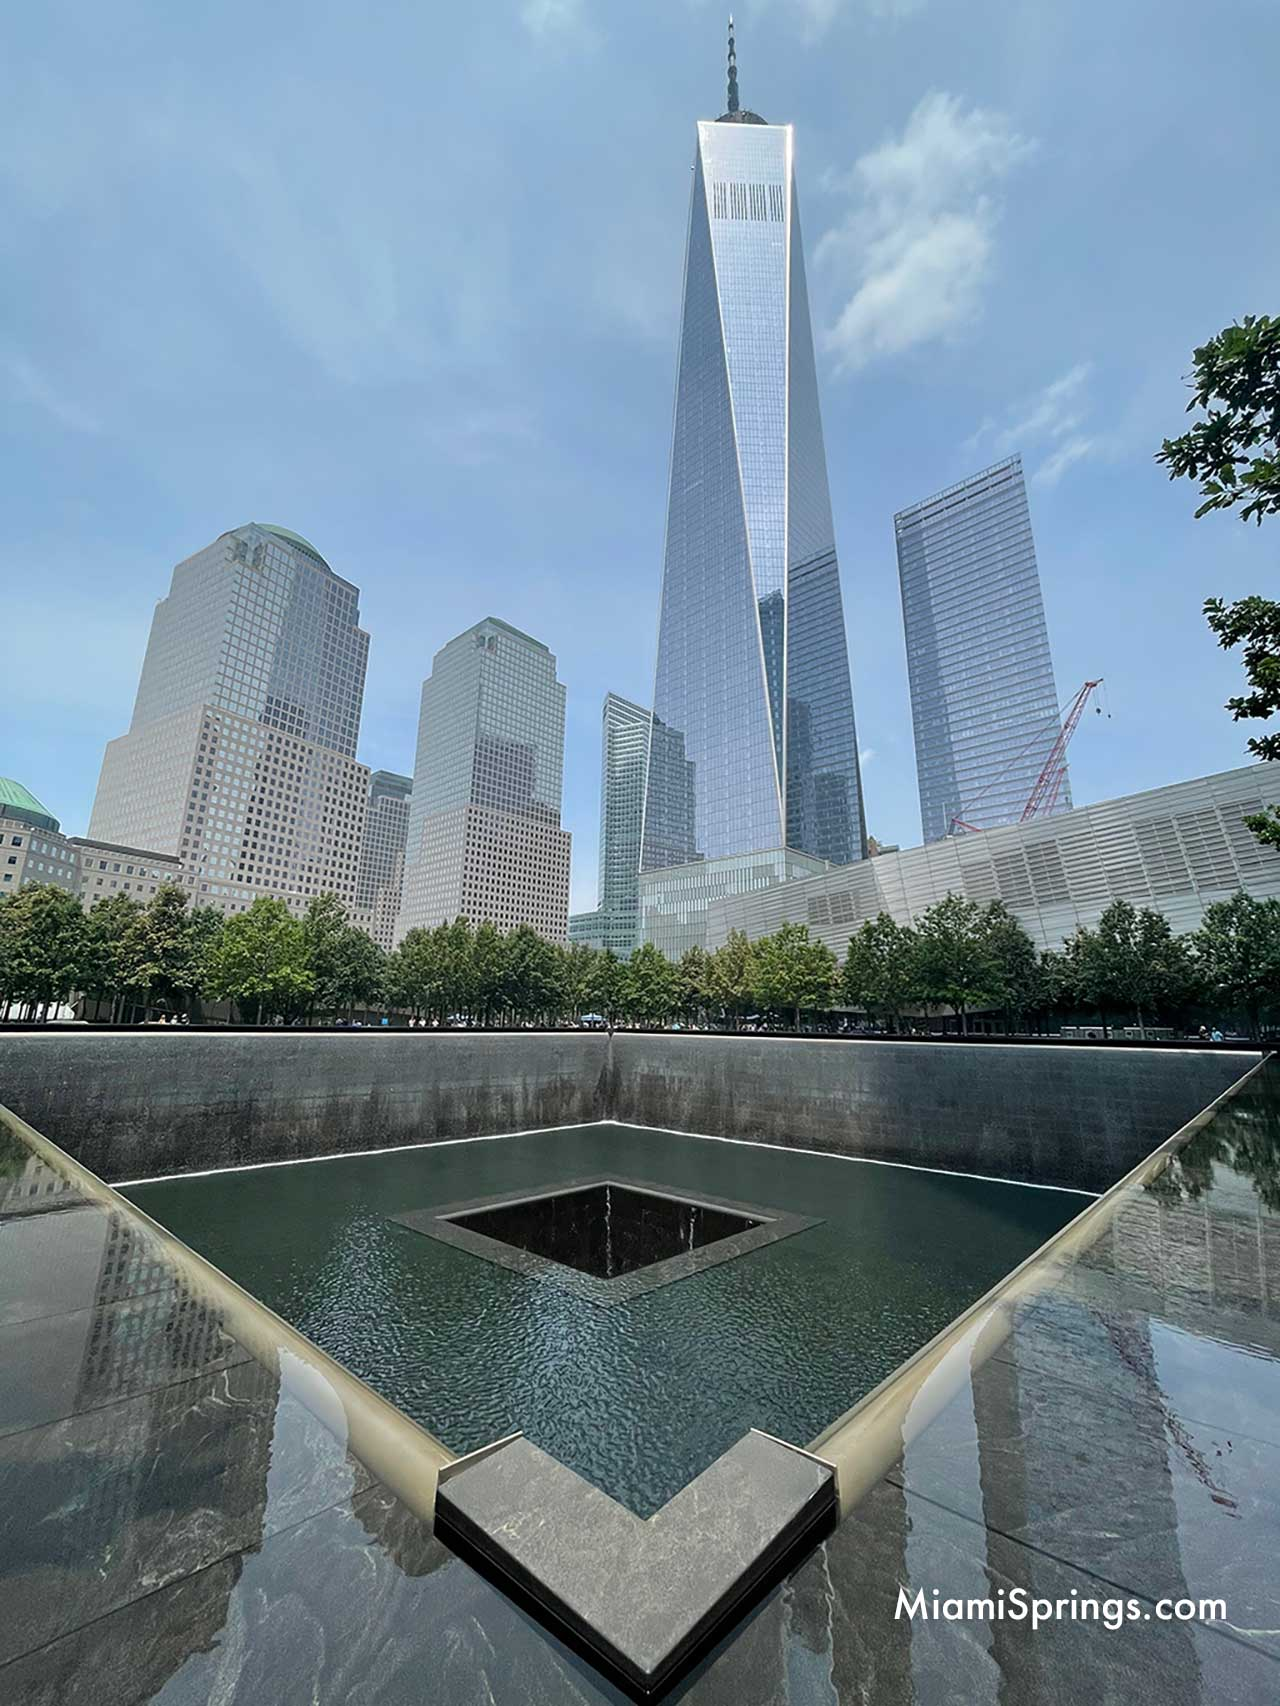 Freedom Tower and Reflection Pond at September 11 Memorial in New York City